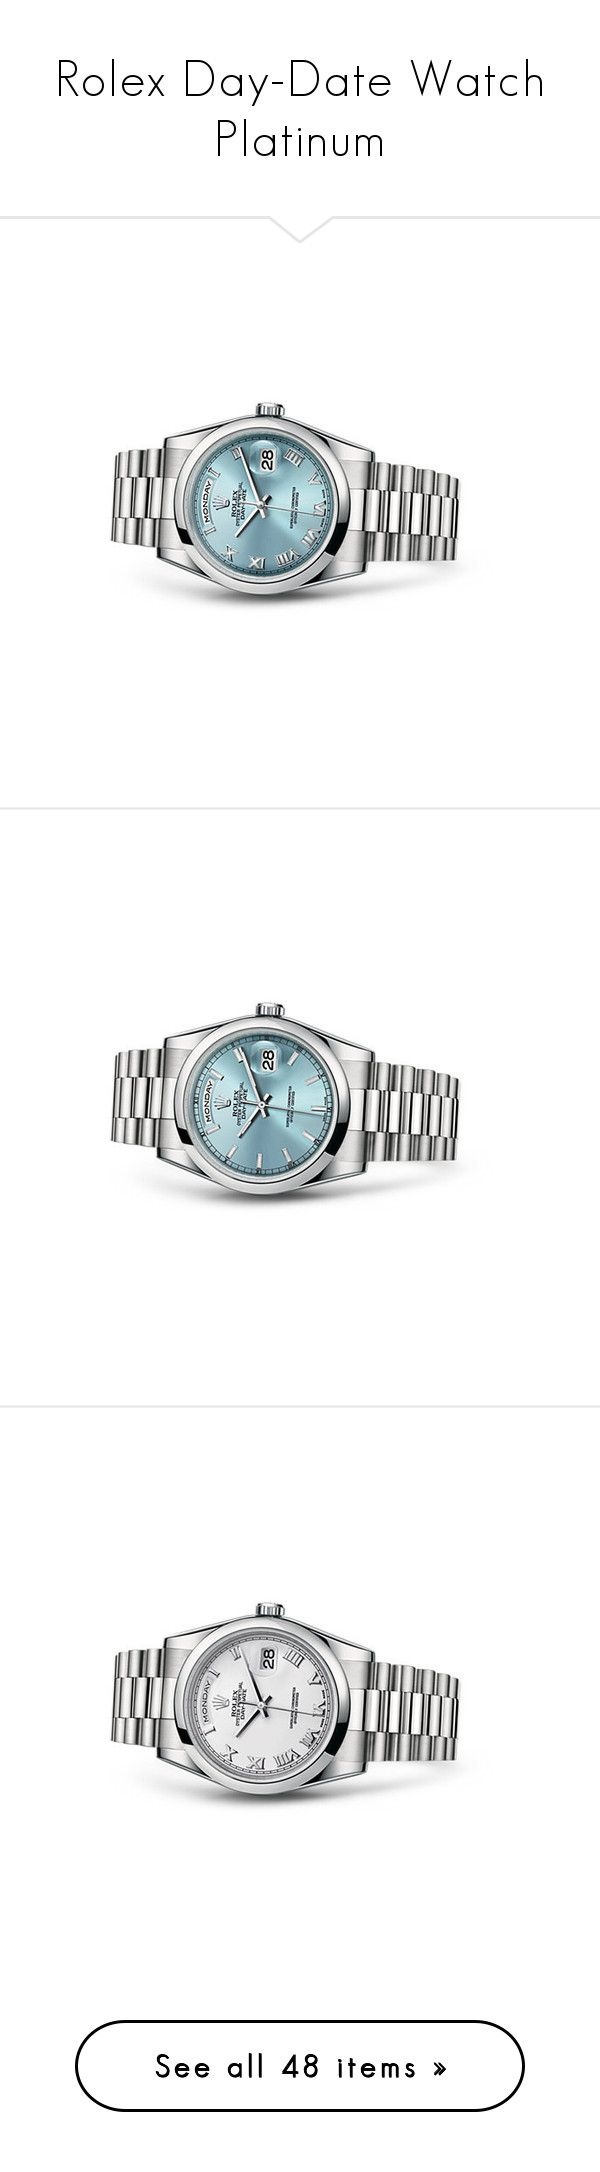 """Rolex Day-Date Watch Platinum"" by karalaska ❤ liked on Polyvore featuring jewelry, watches, rolex, rolex wrist watch, rolex jewelry and rolex watches"